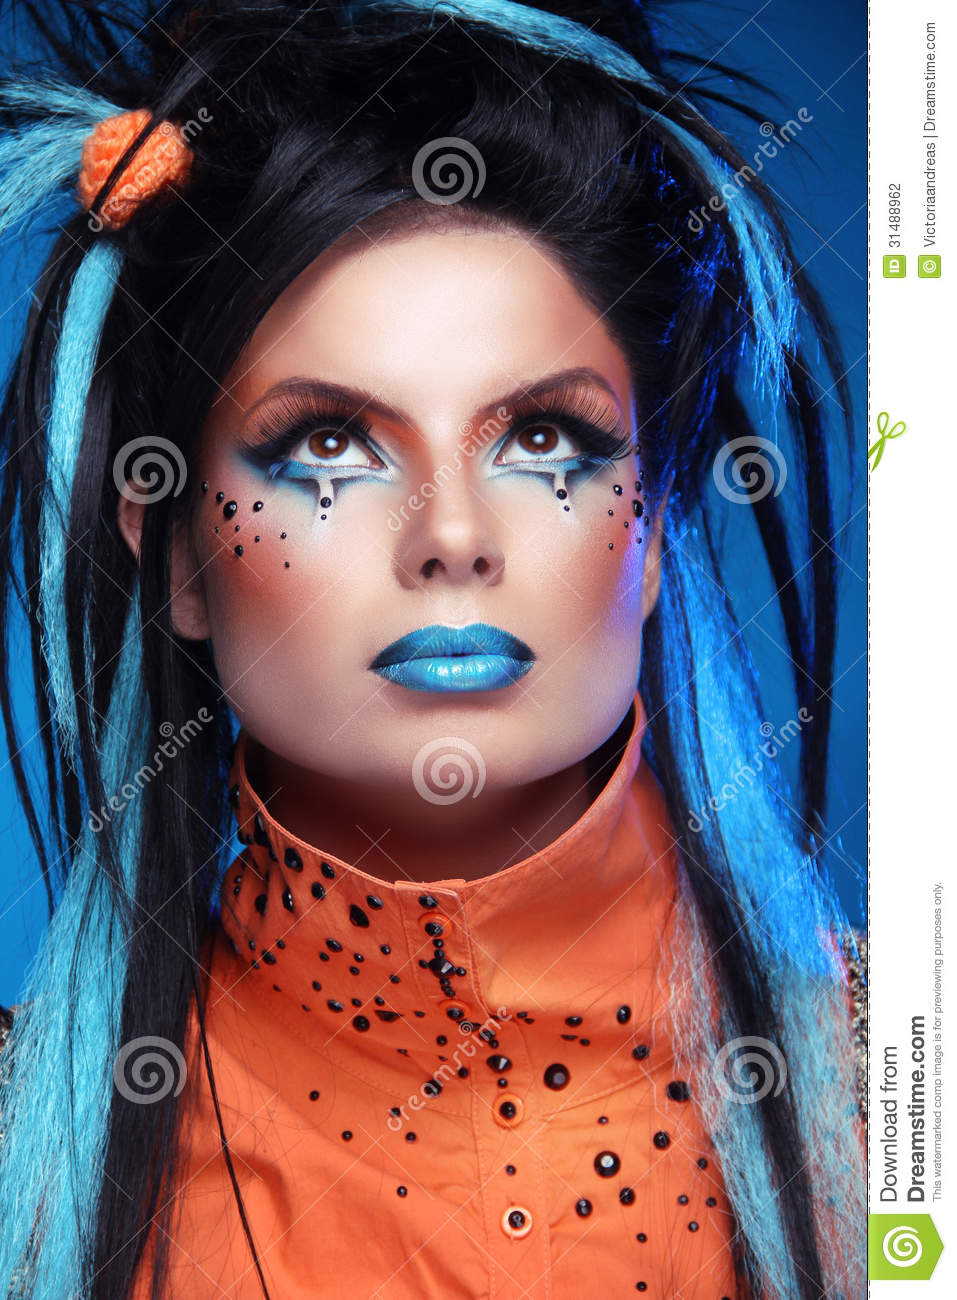 makeup hair style video makeup hairstyle up portrait of rock 8573 | makeup punk hairstyle close up portrait rock girl blue lips black hair styling colored strand hair 31488962